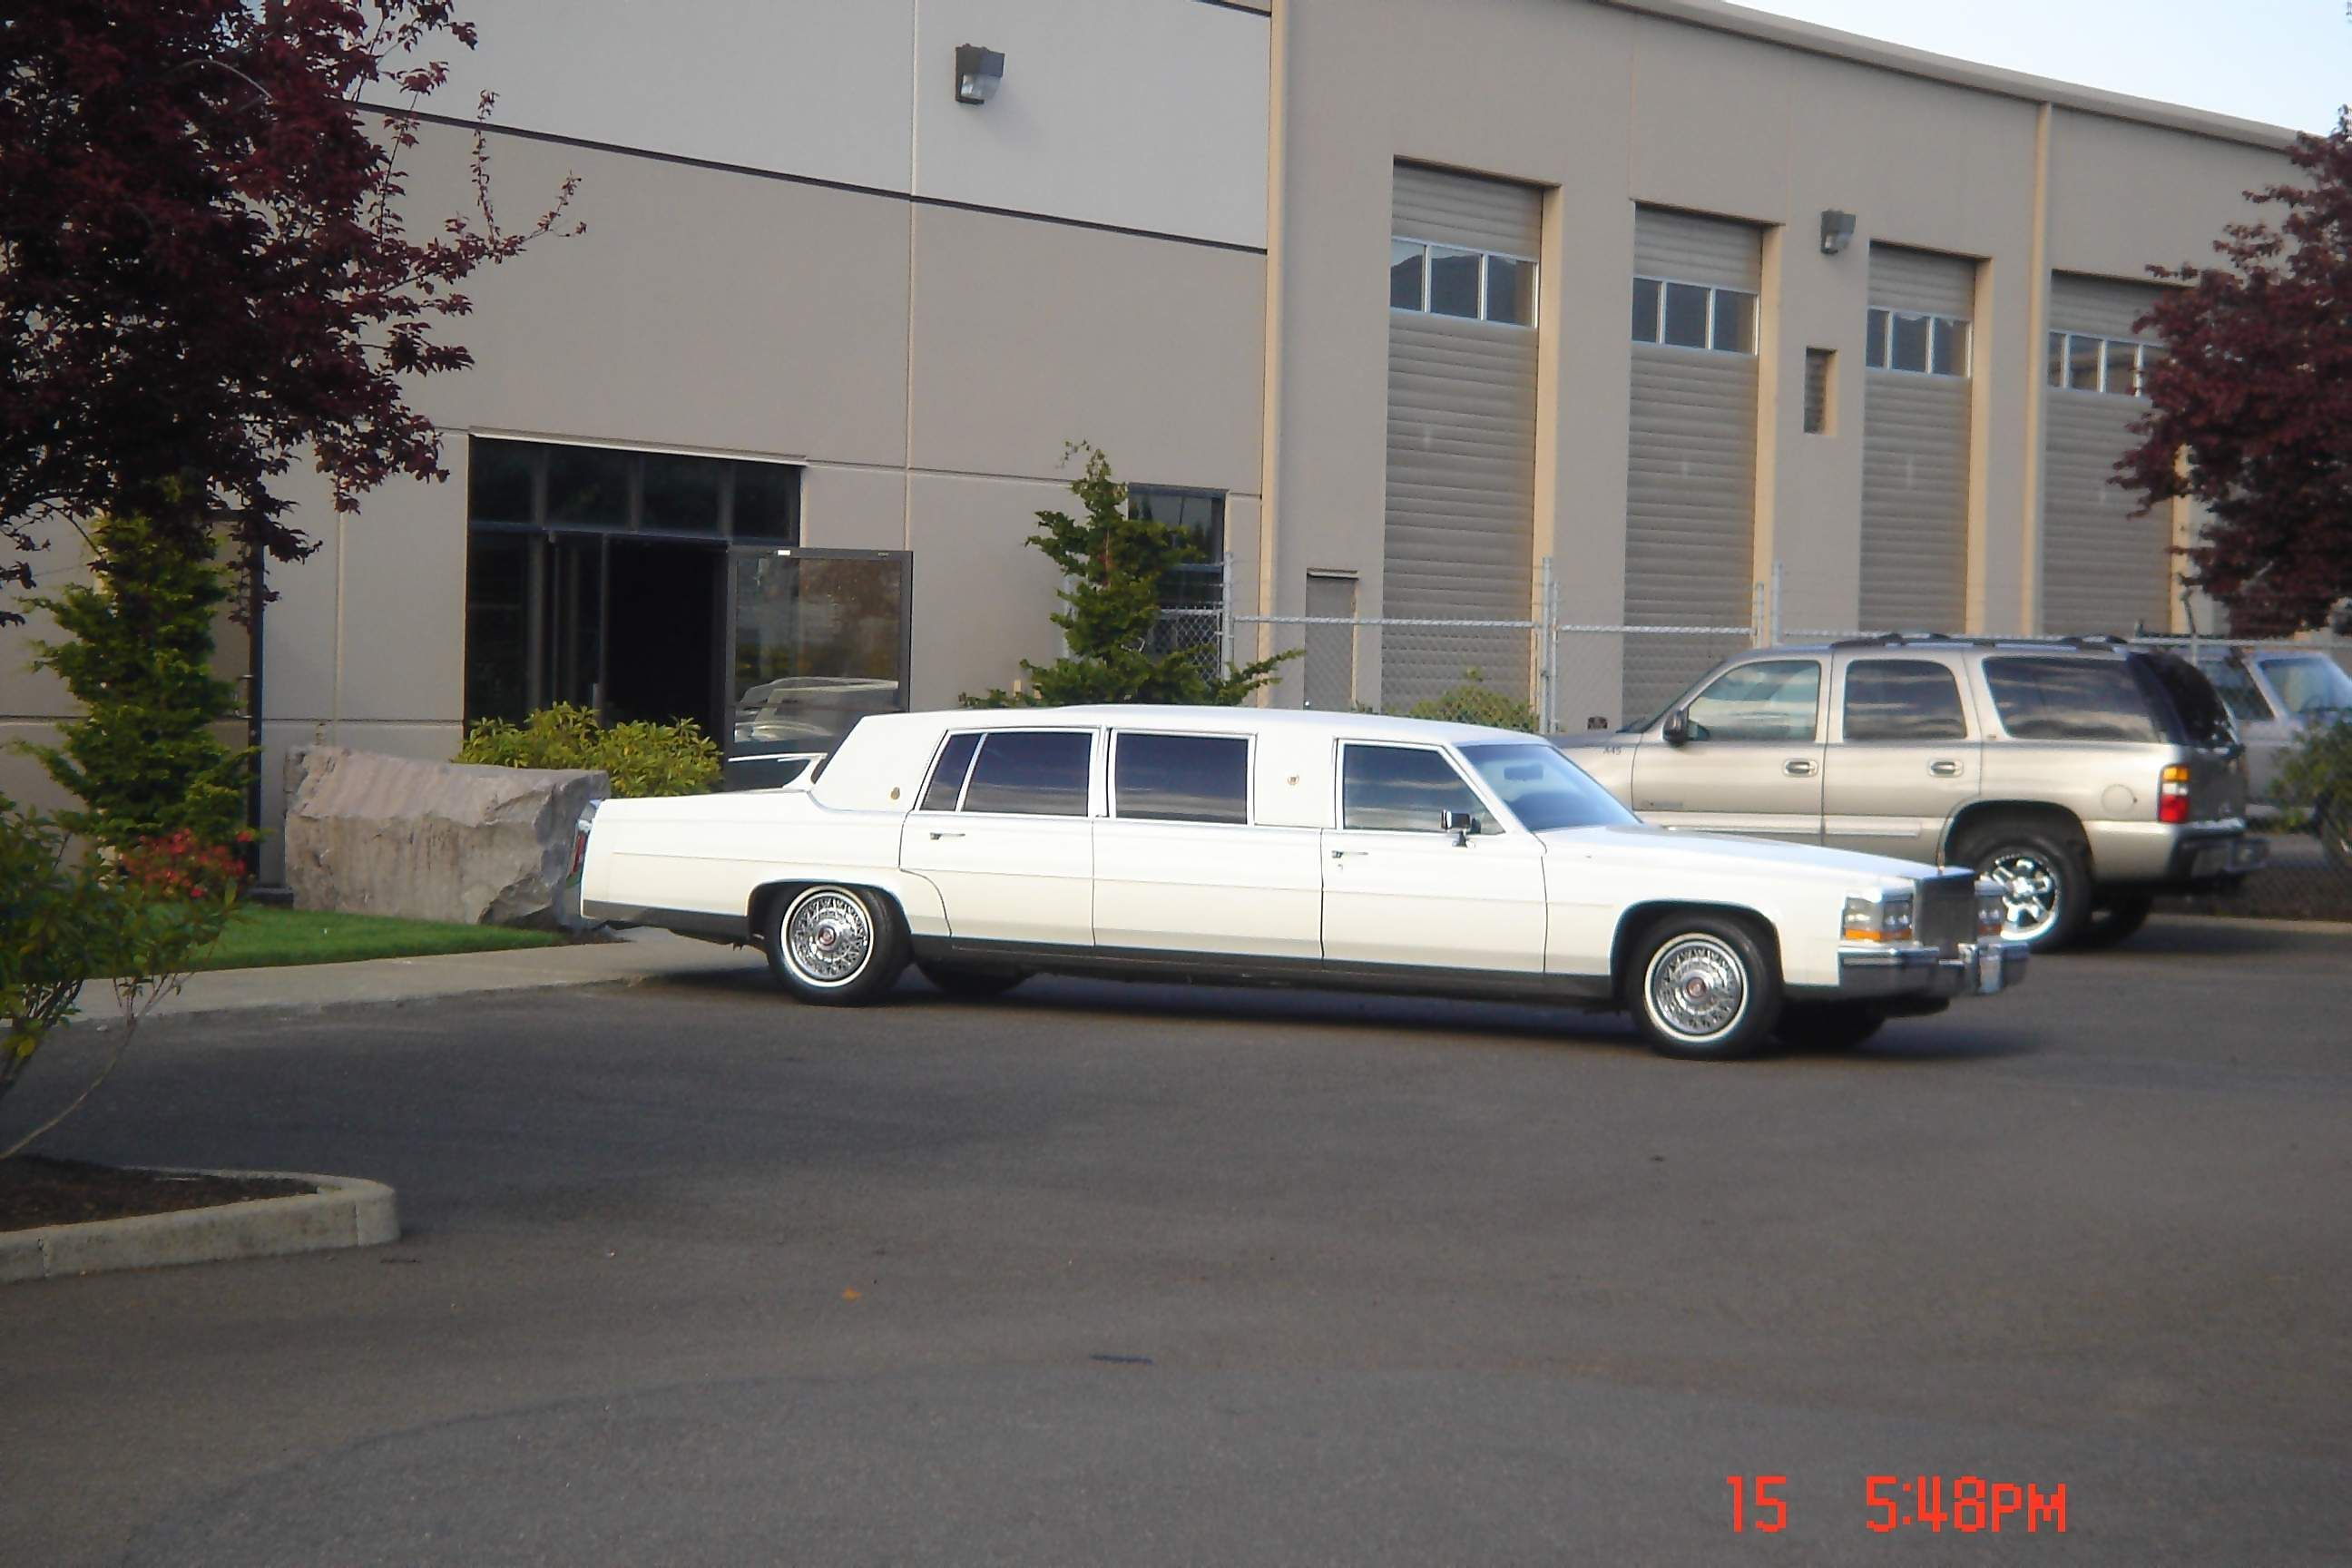 cadillac limousine limo car i just come across this type of amazing